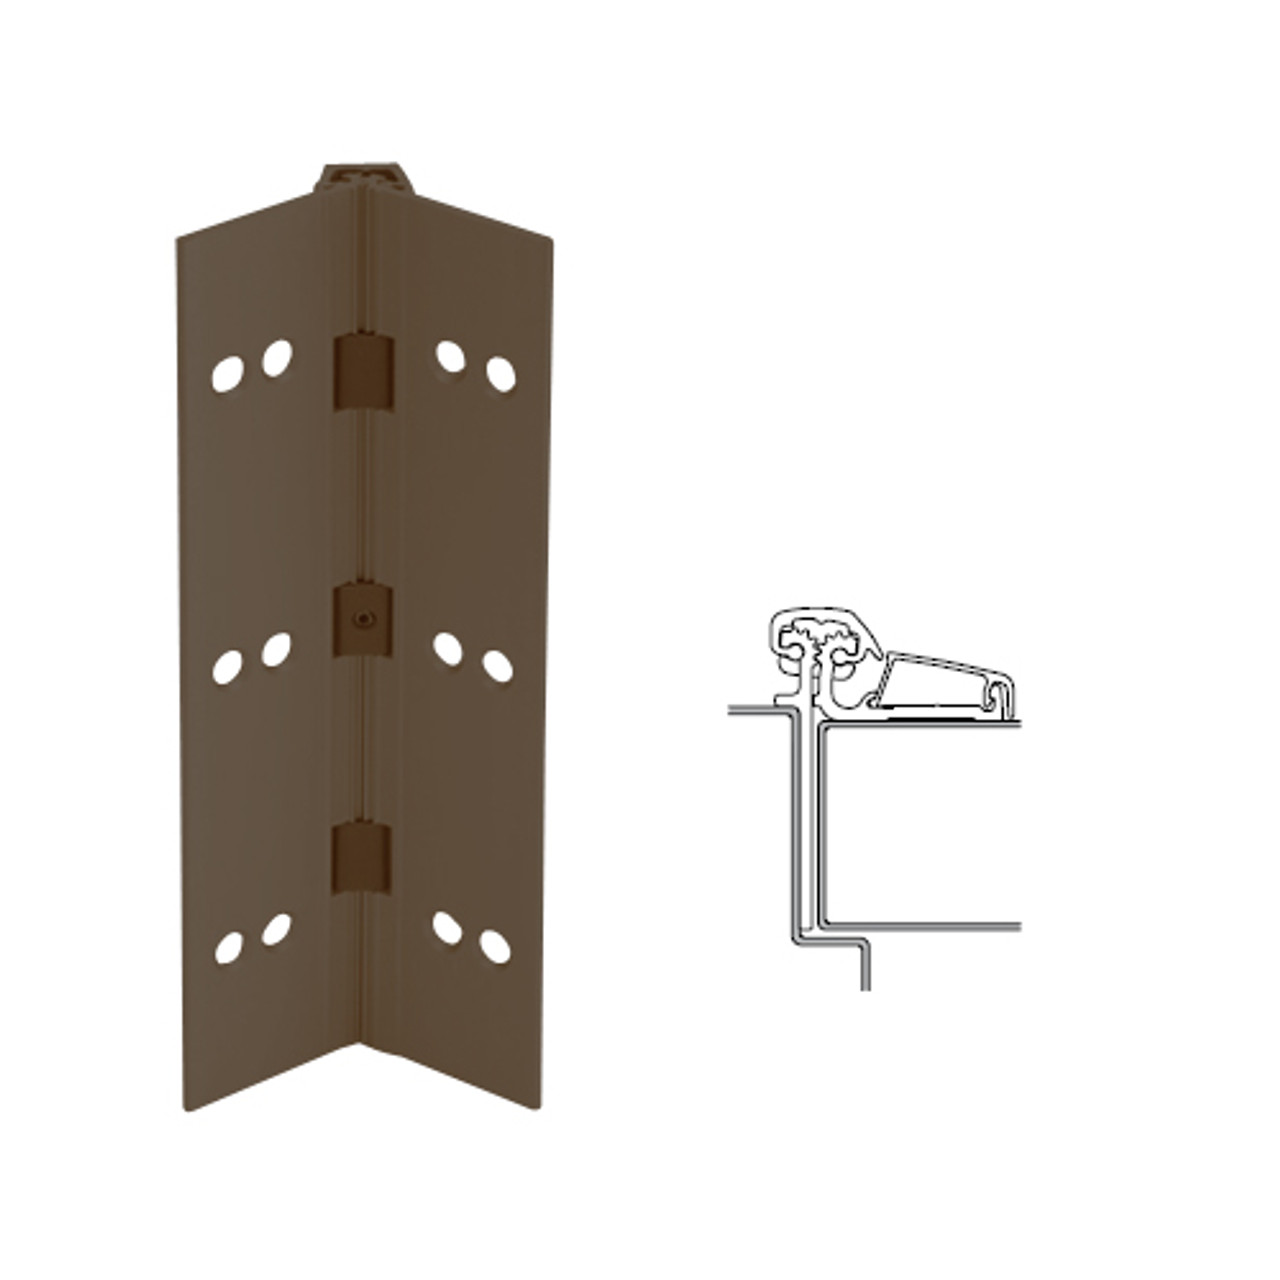 054XY-313AN-83 IVES Adjustable Half Surface Continuous Geared Hinges in Dark Bronze Anodized